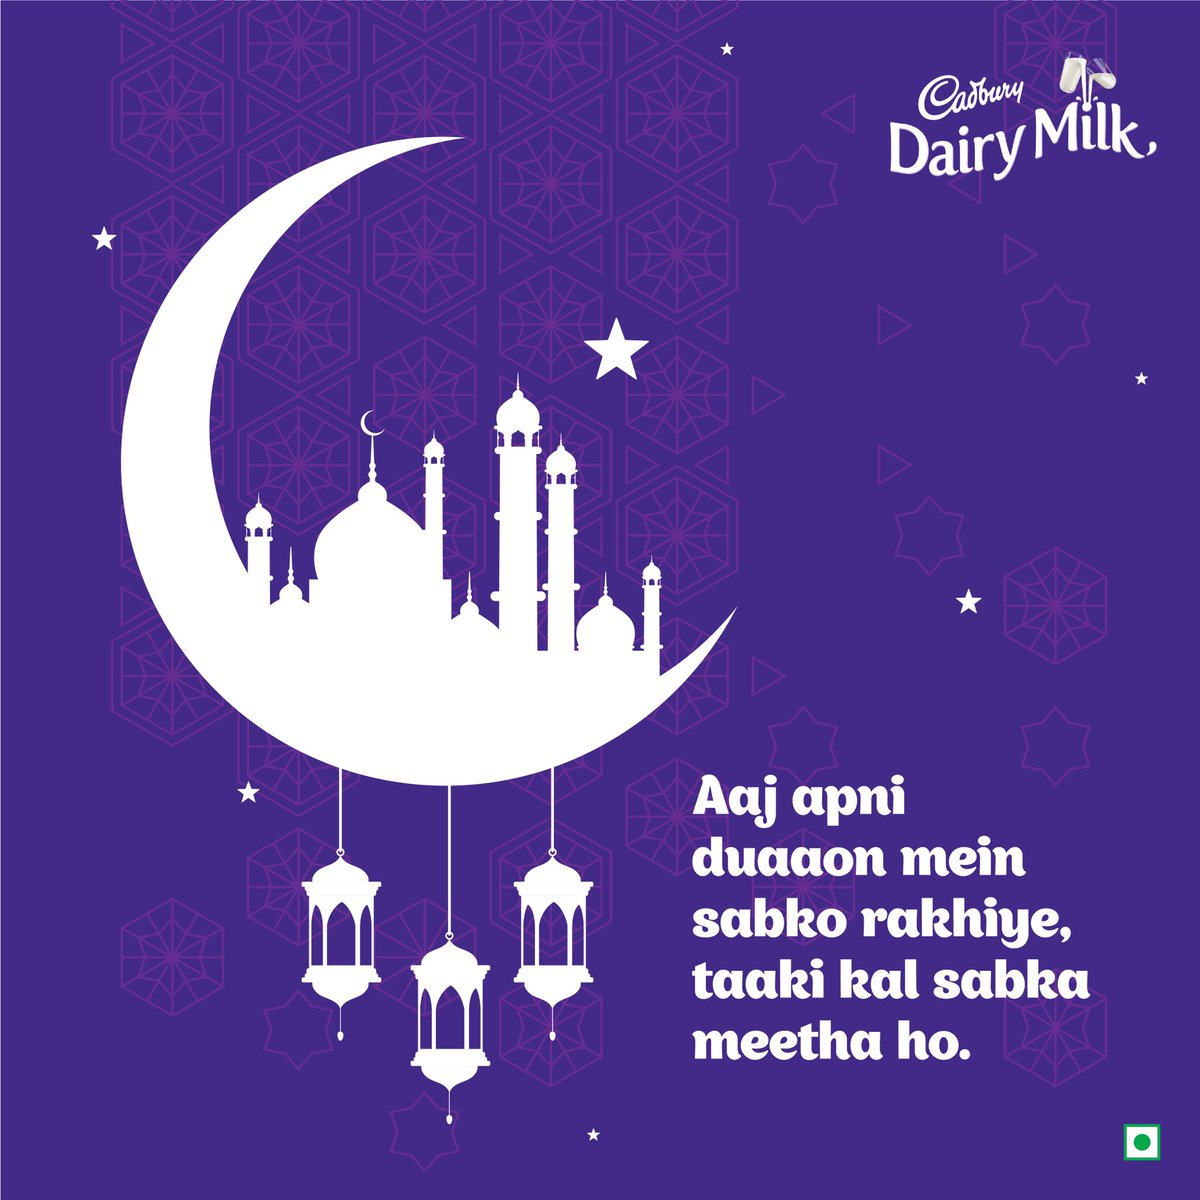 The sweetest time of the year is here. #EidMubarak https://t.co/OIHTYNwXvM